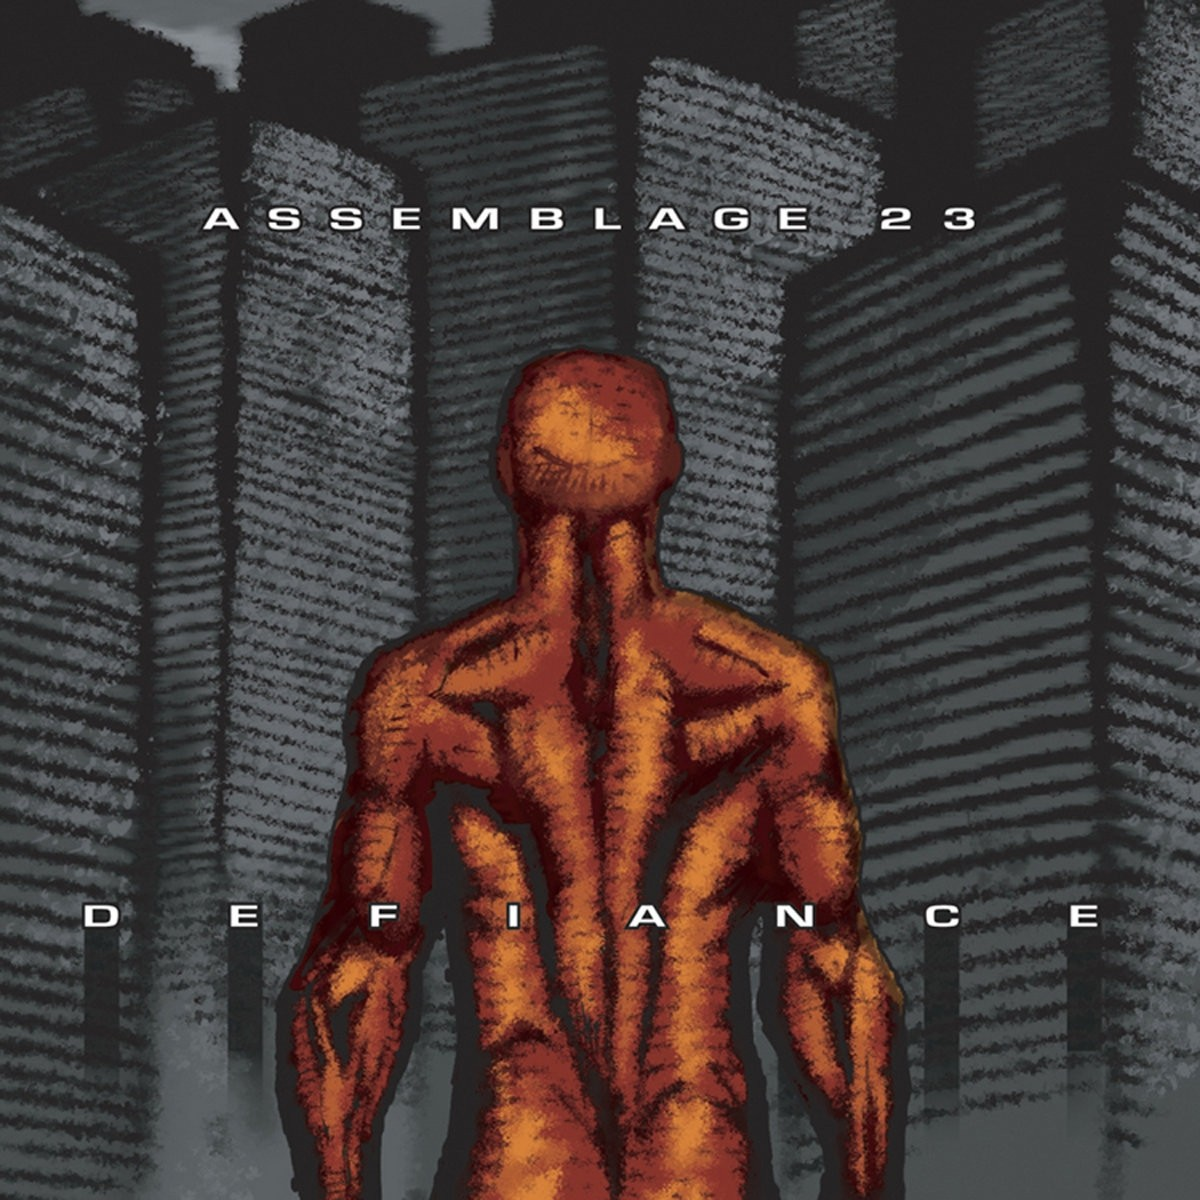 Assemblage 23 - Defiance (US Edition) - CD